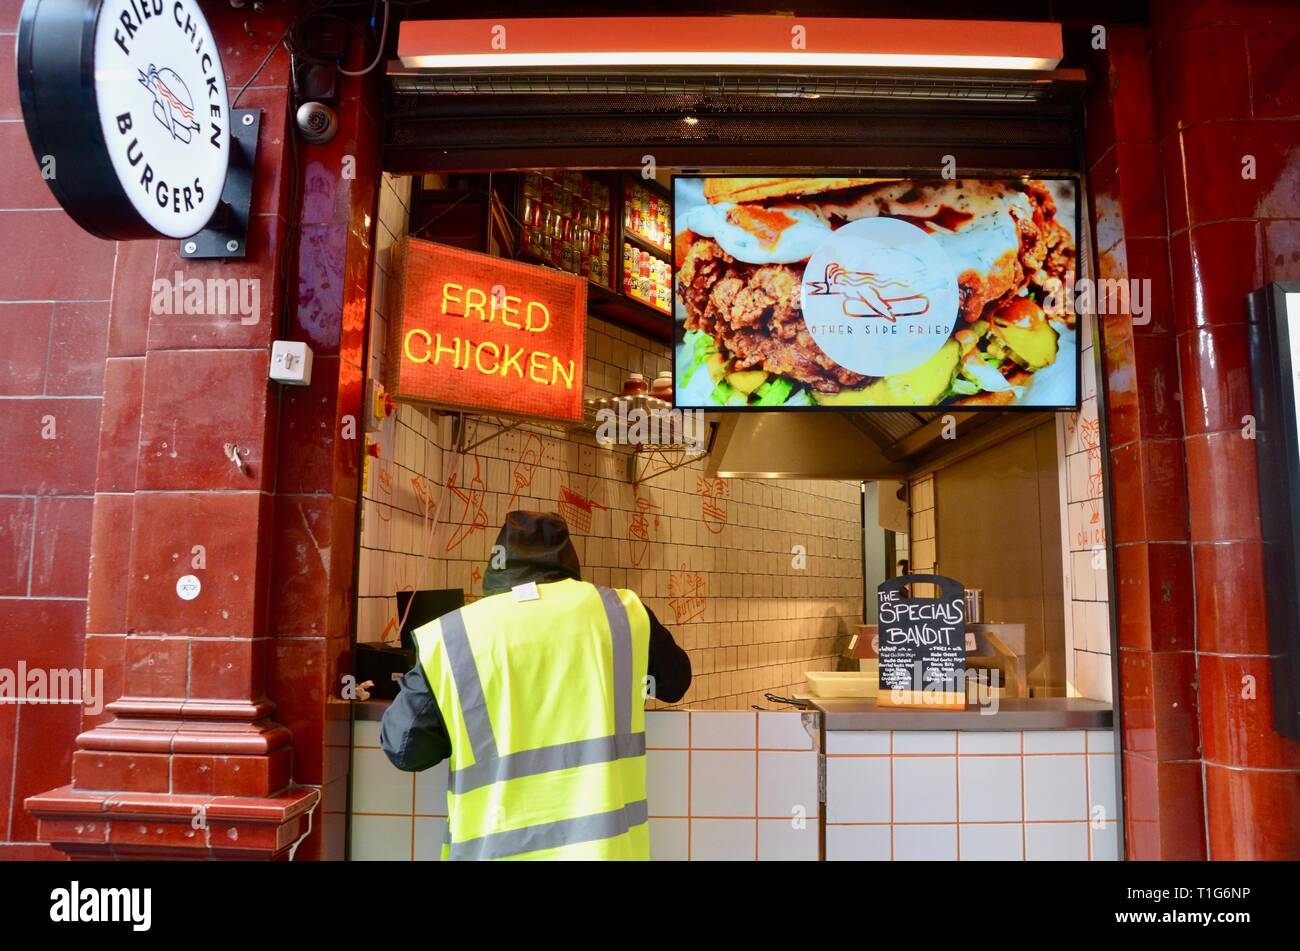 fried chicken burger take away at leicester square underground station london england - Stock Image